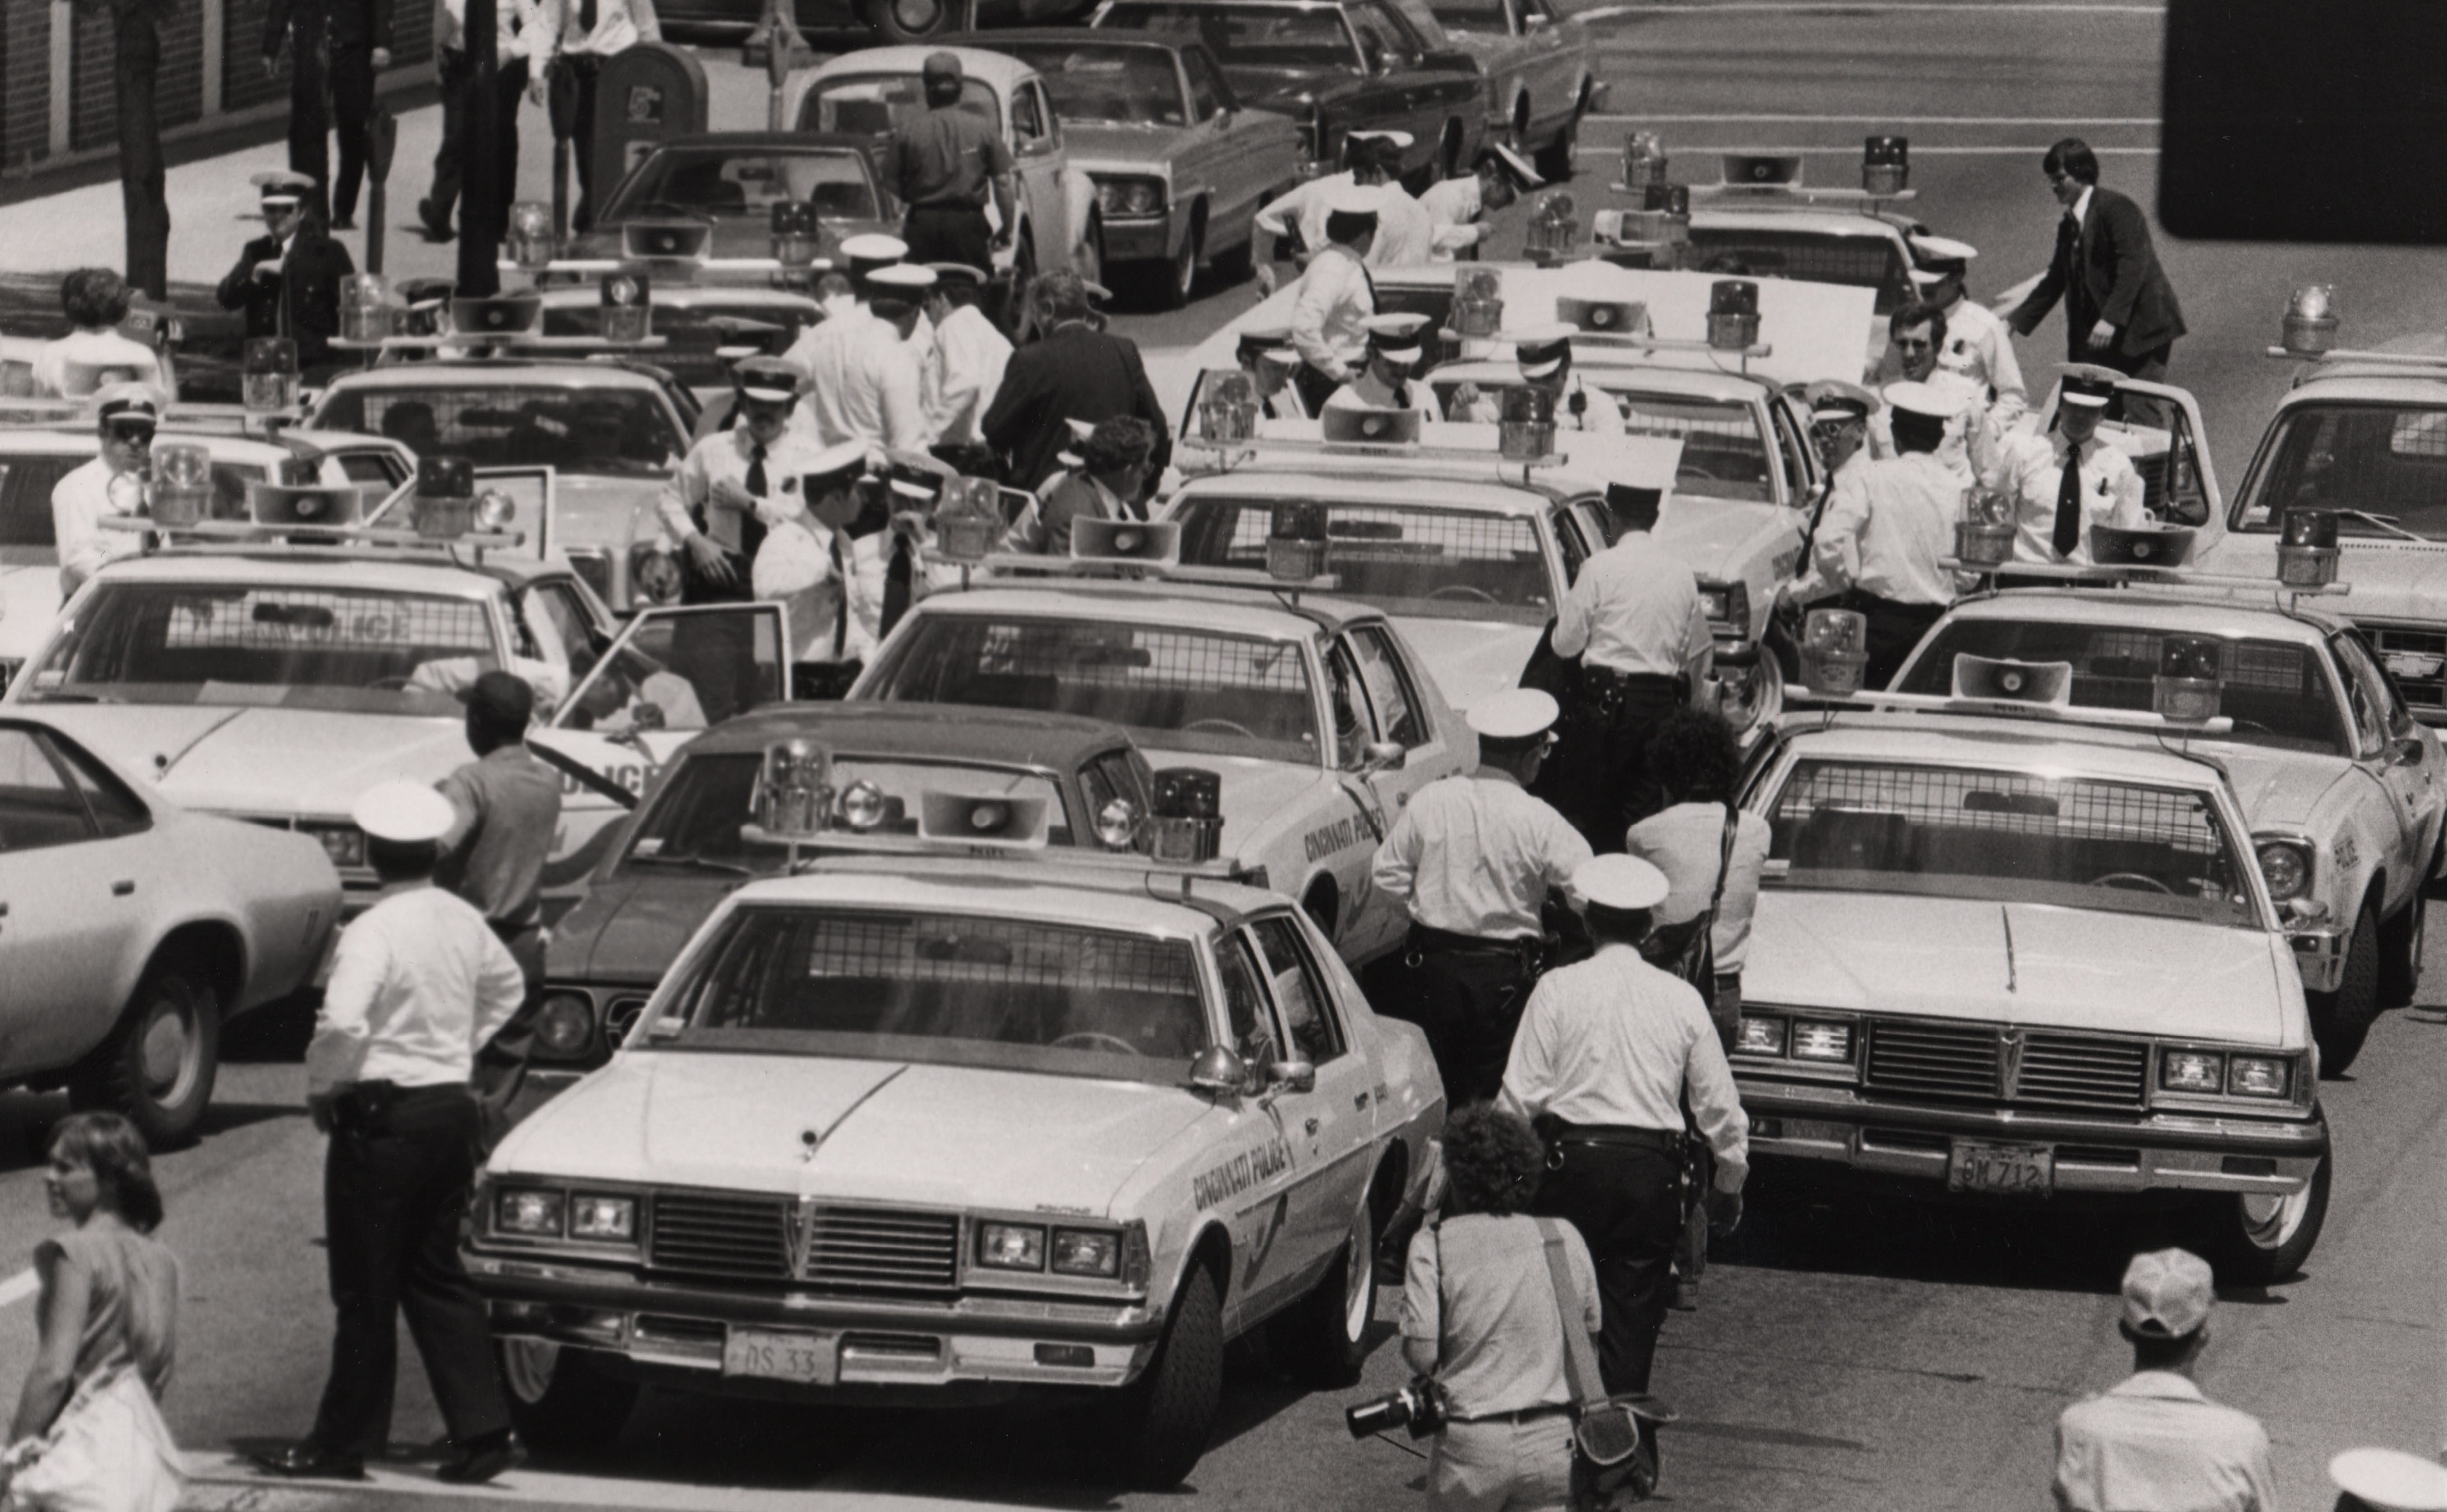 On May 8, 1979, police parked their cruisers at City Hall, threw their keys in a pile and walked away. They were striking for bulletproof vests, more powerful guns and other protections after four officers were killed in eight months.